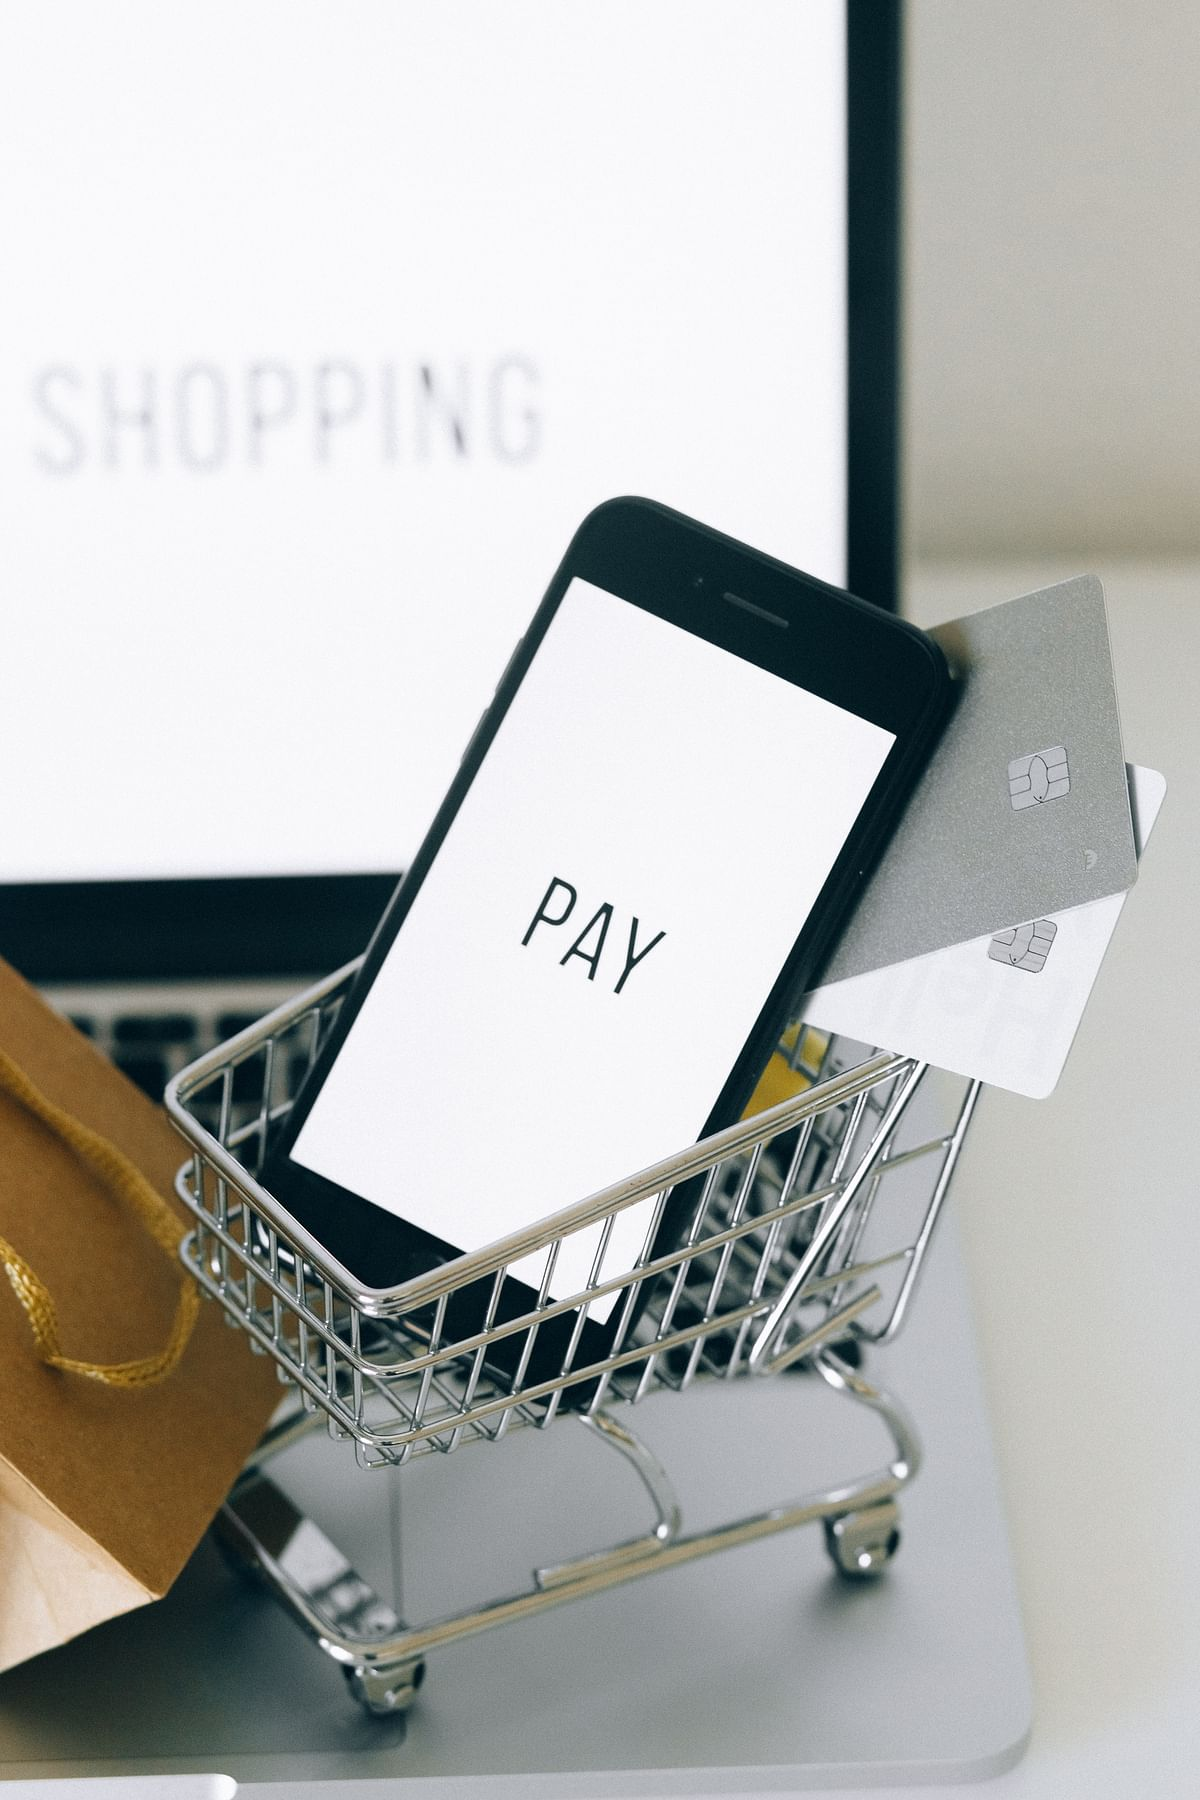 Rising internet usage, increasing middle class powering Indian e-commerce market, says Fitch Solutions